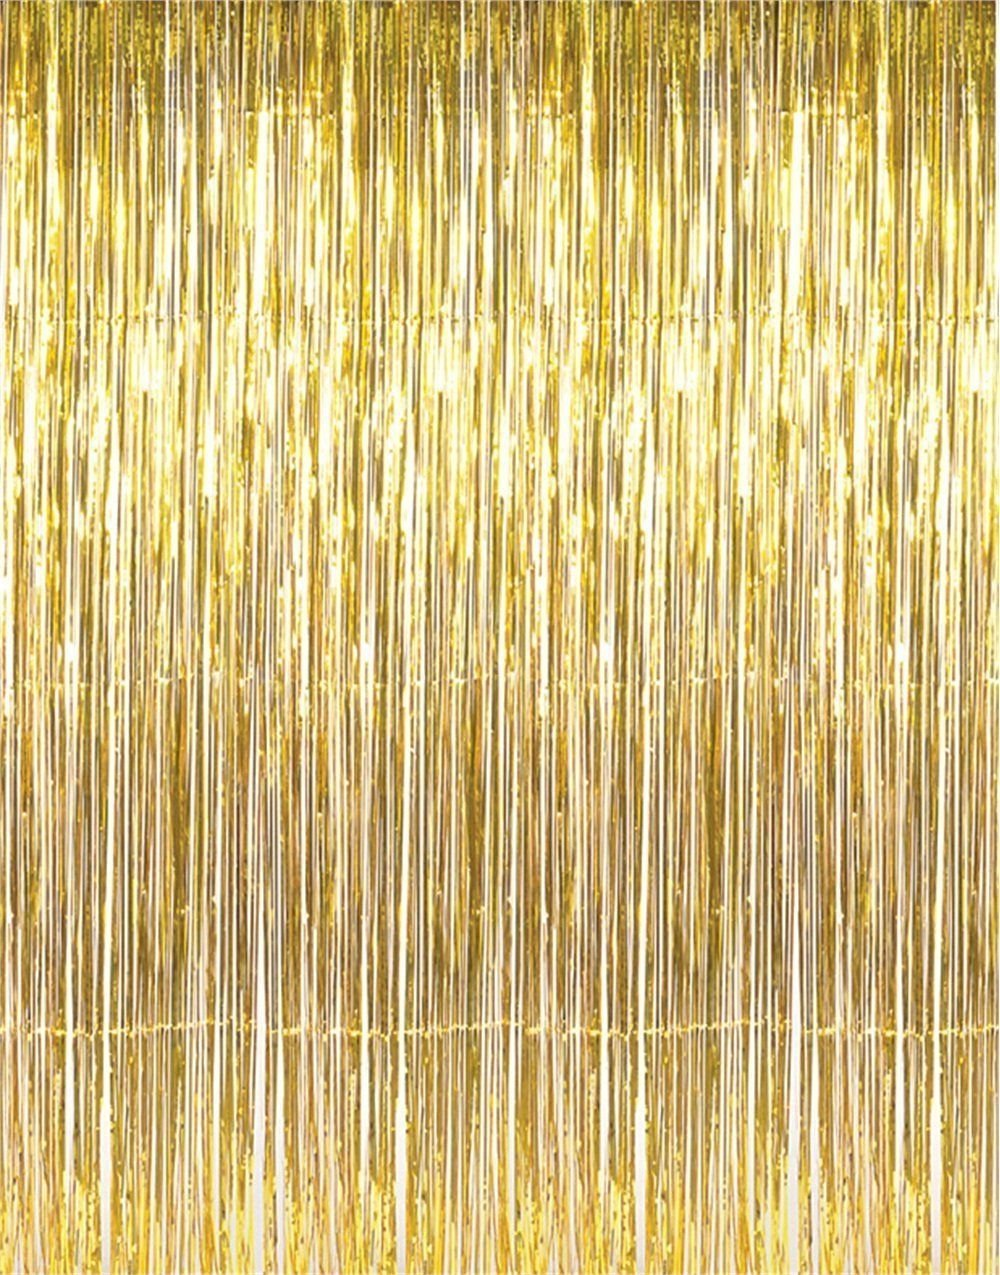 gold tinsel.jpg